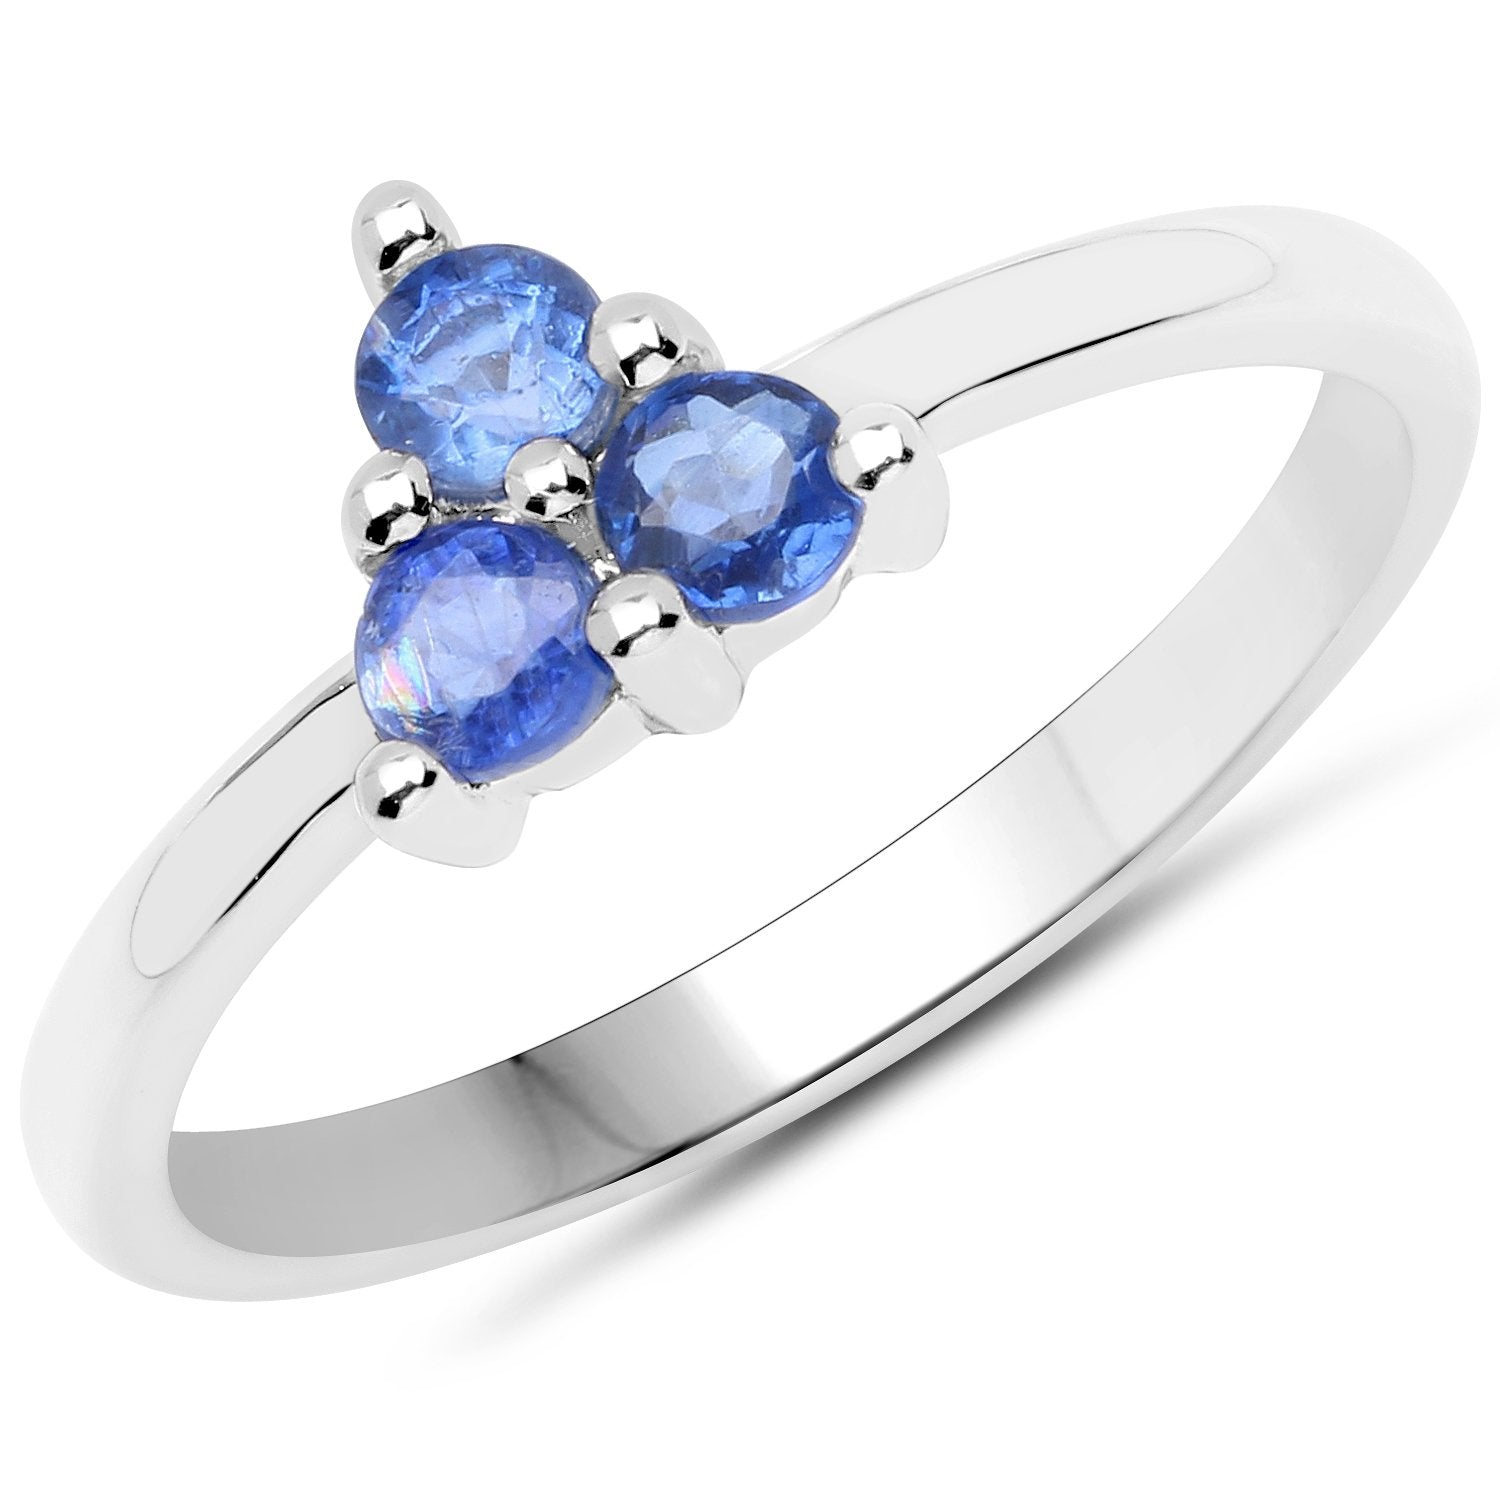 LoveHuang 0.49 Carats Genuine Kyanite Trio Ring Solid .925 Sterling Silver With Rhodium Plating